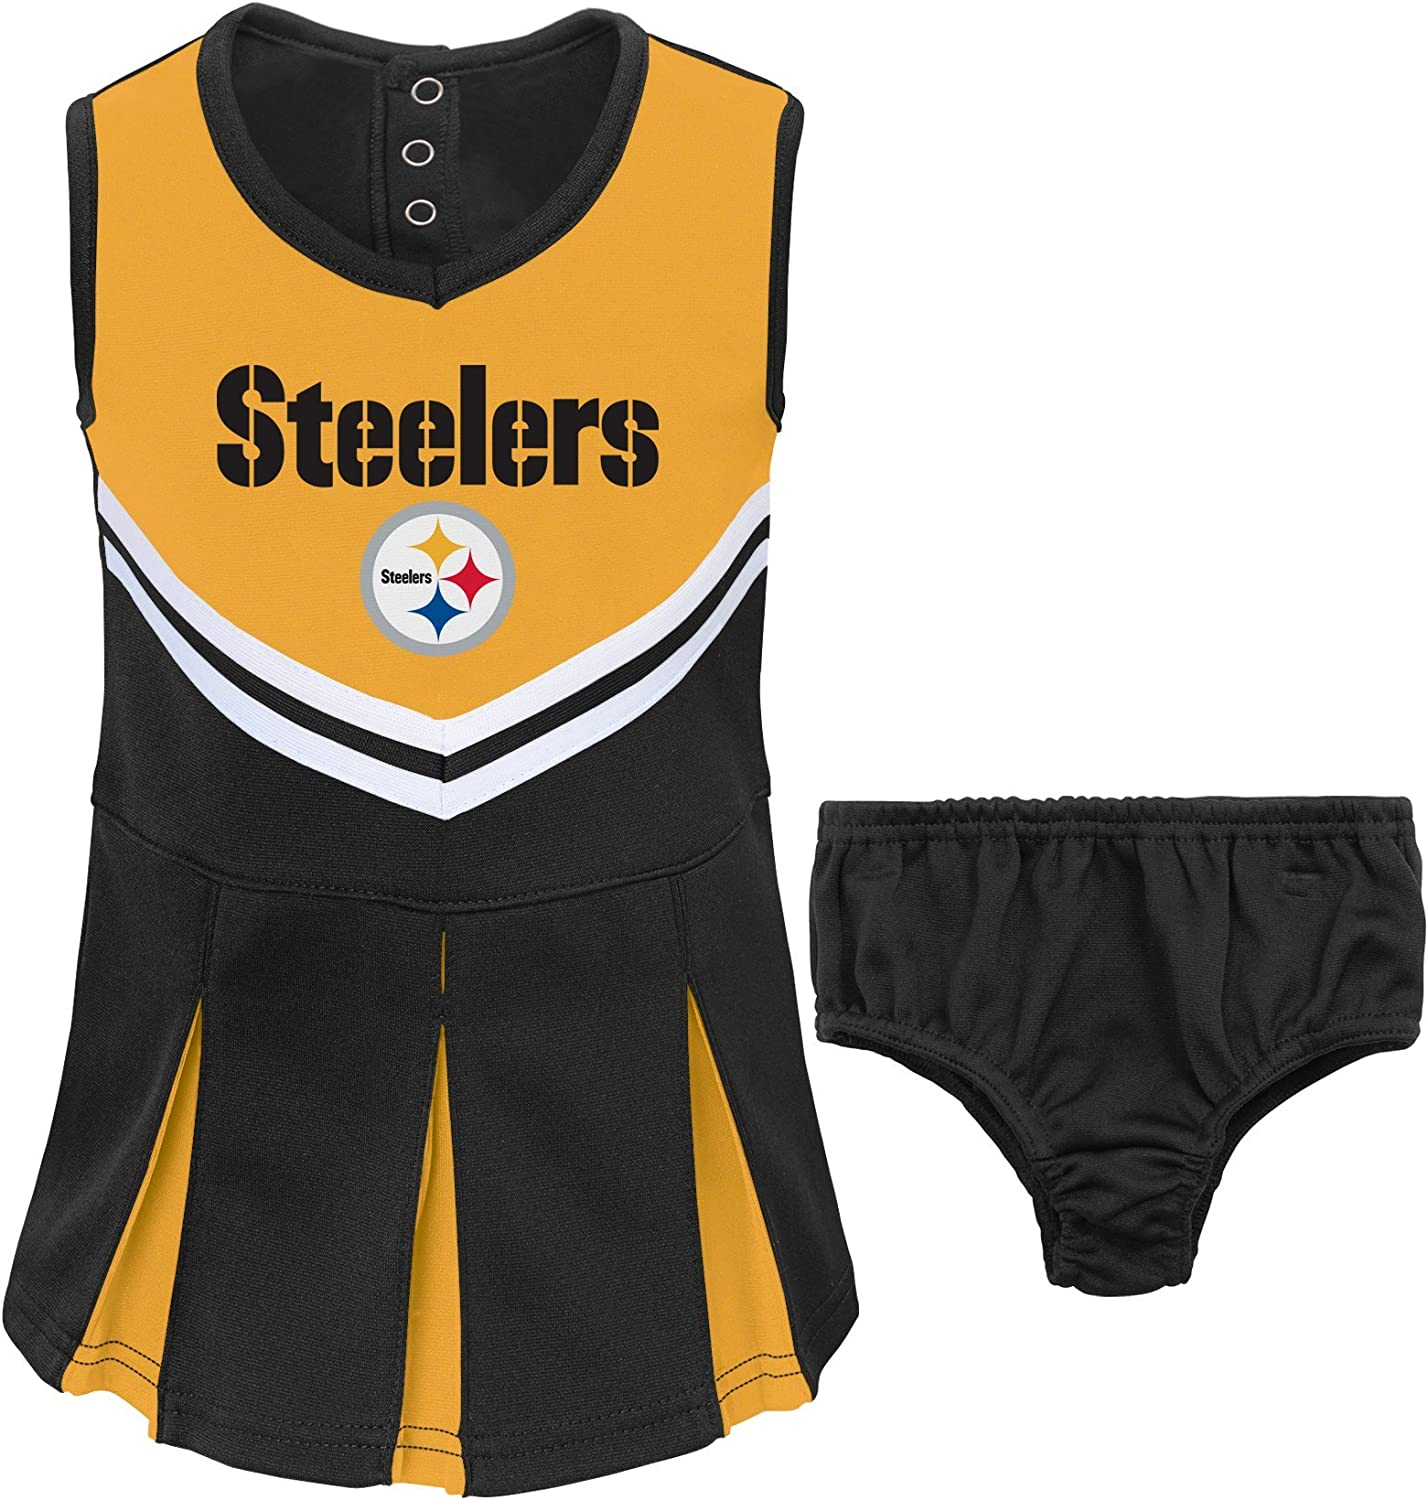 Size 2T Toddler Girls Pittsburgh Steelers 2-Pc Cheerleader Set NFL Team Apparel